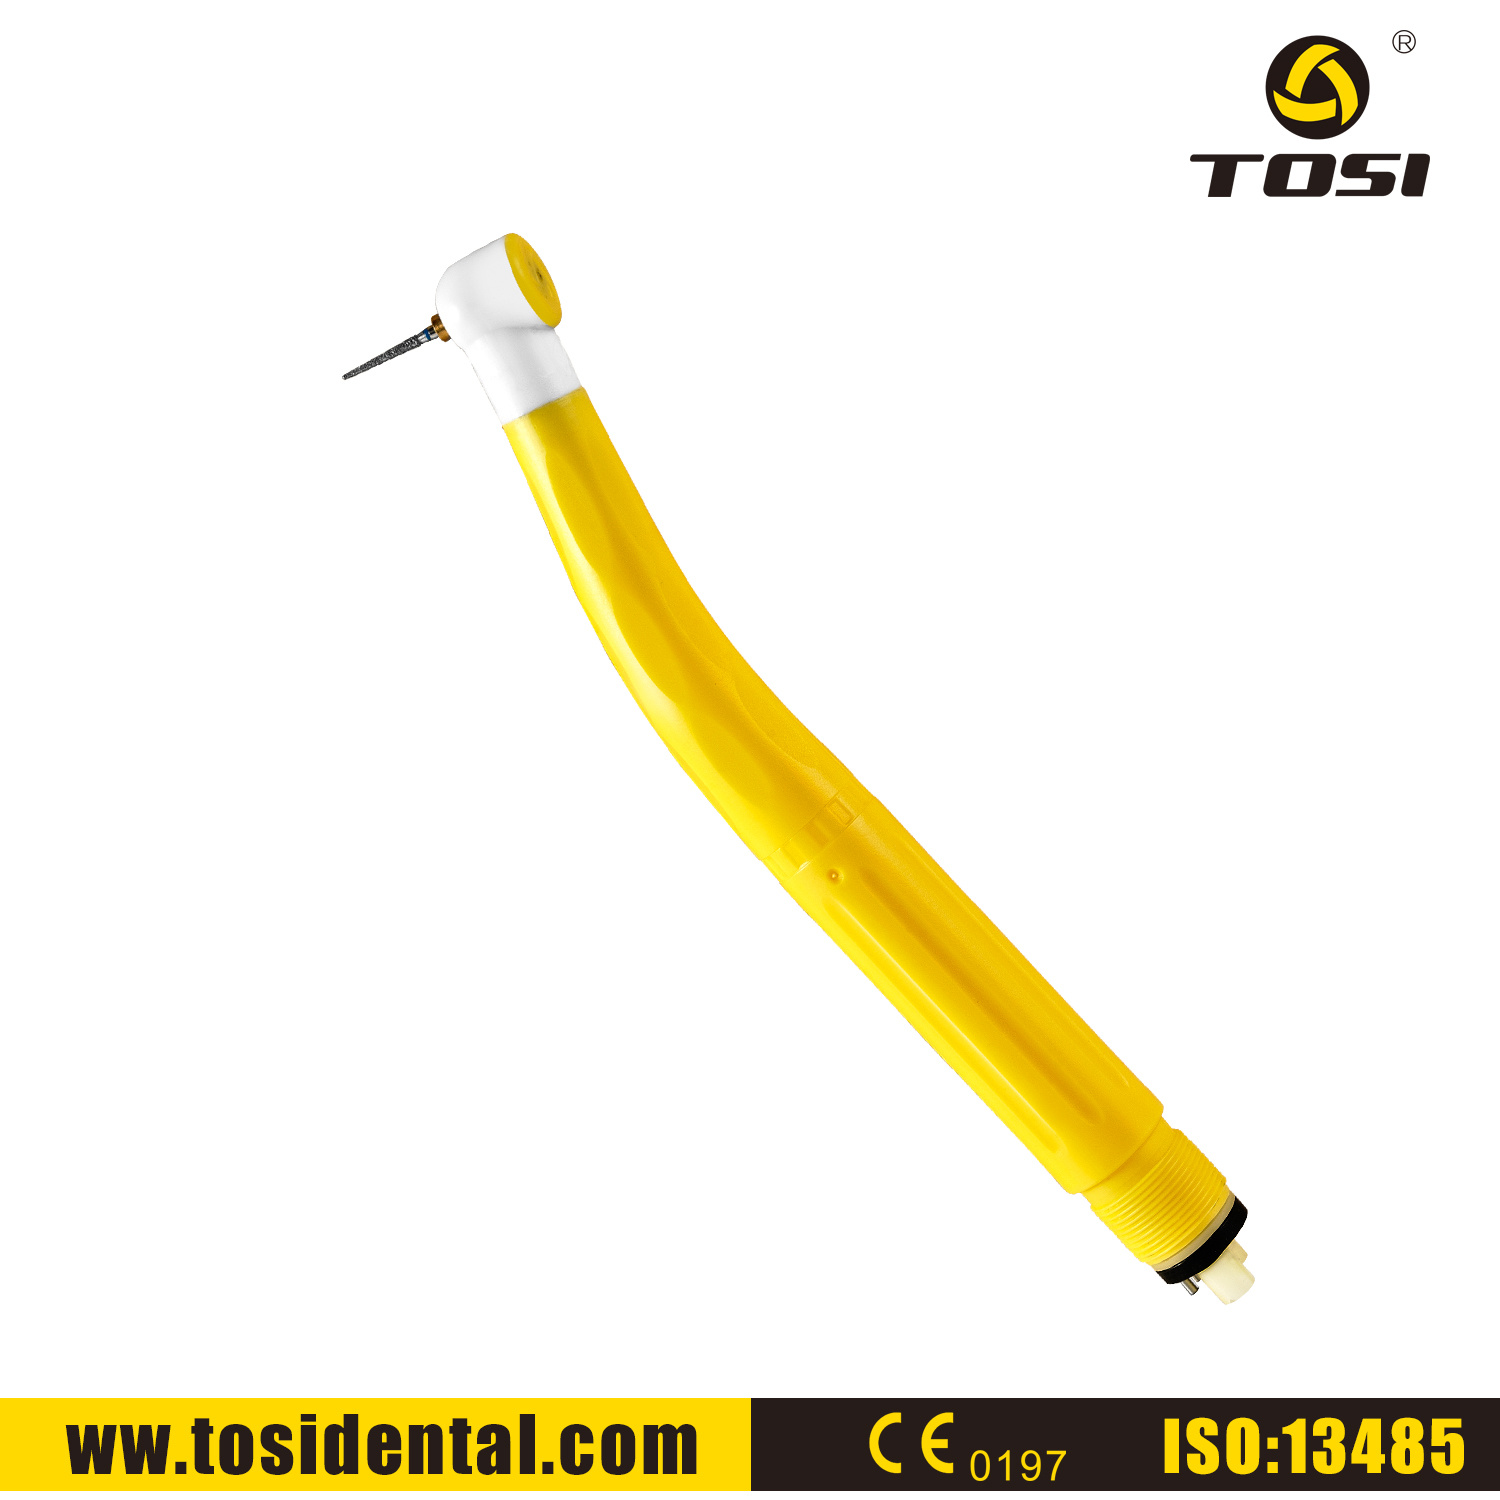 Tosi Personal Use Disposable High Speed Dental Handpiece Direct Connection